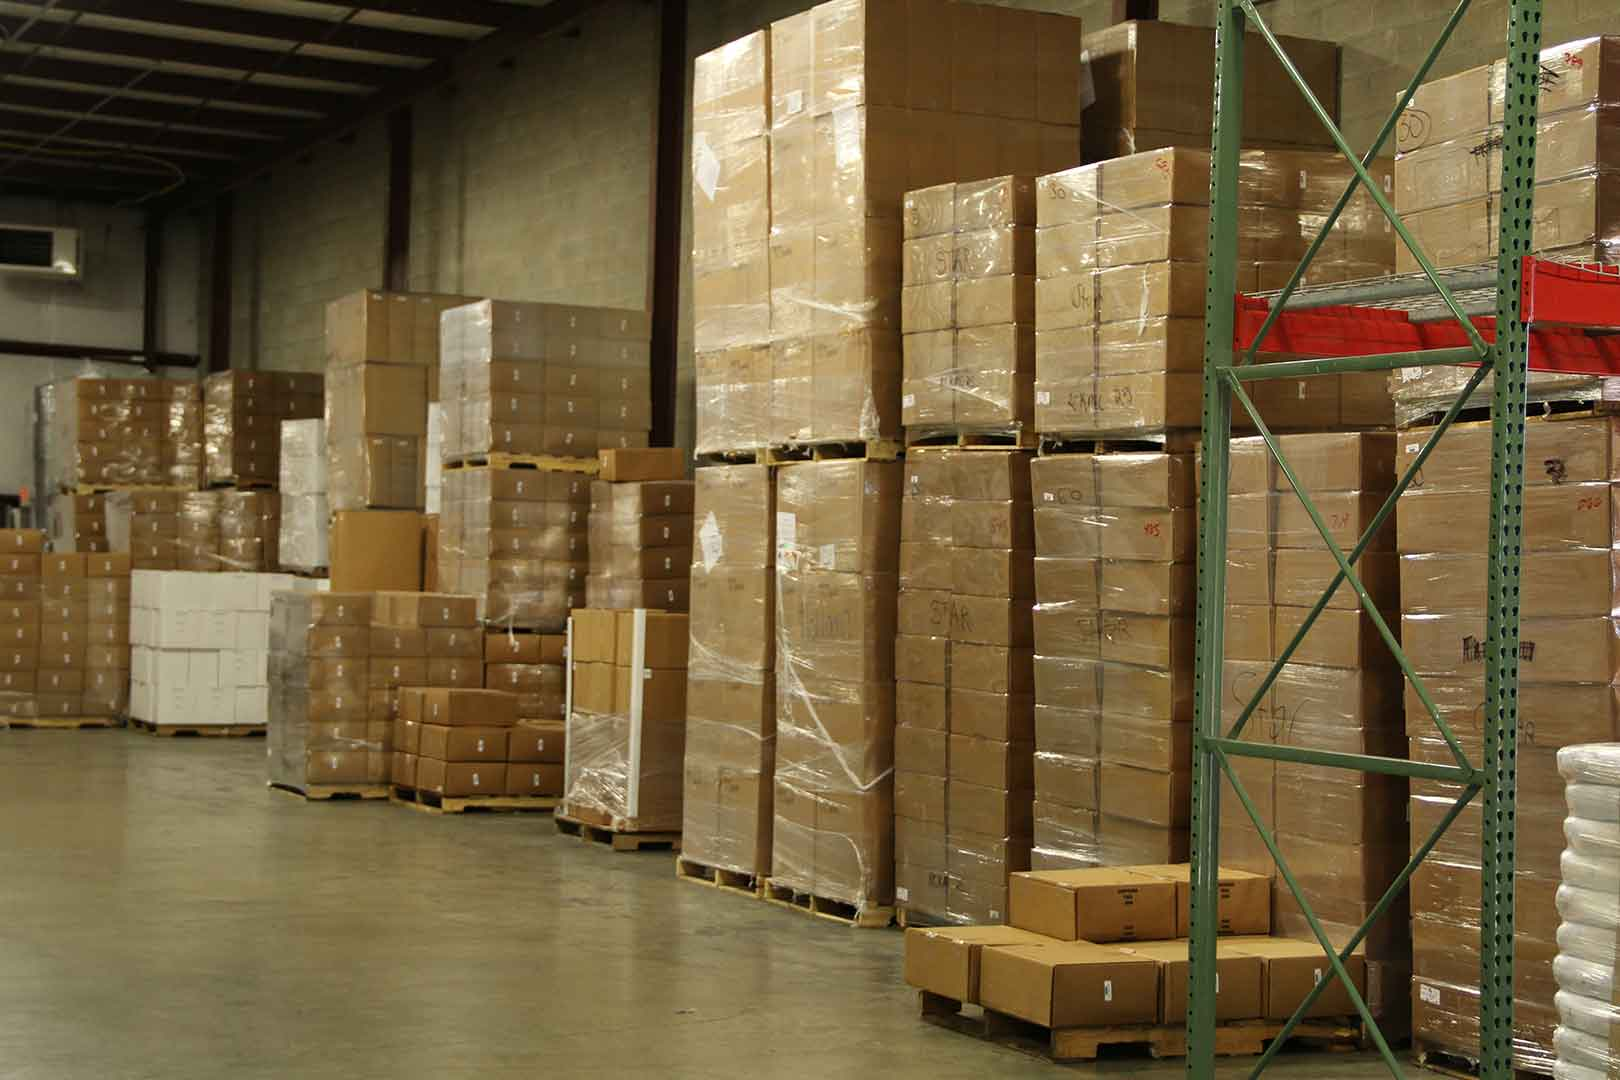 stacks of boxes in warehouse